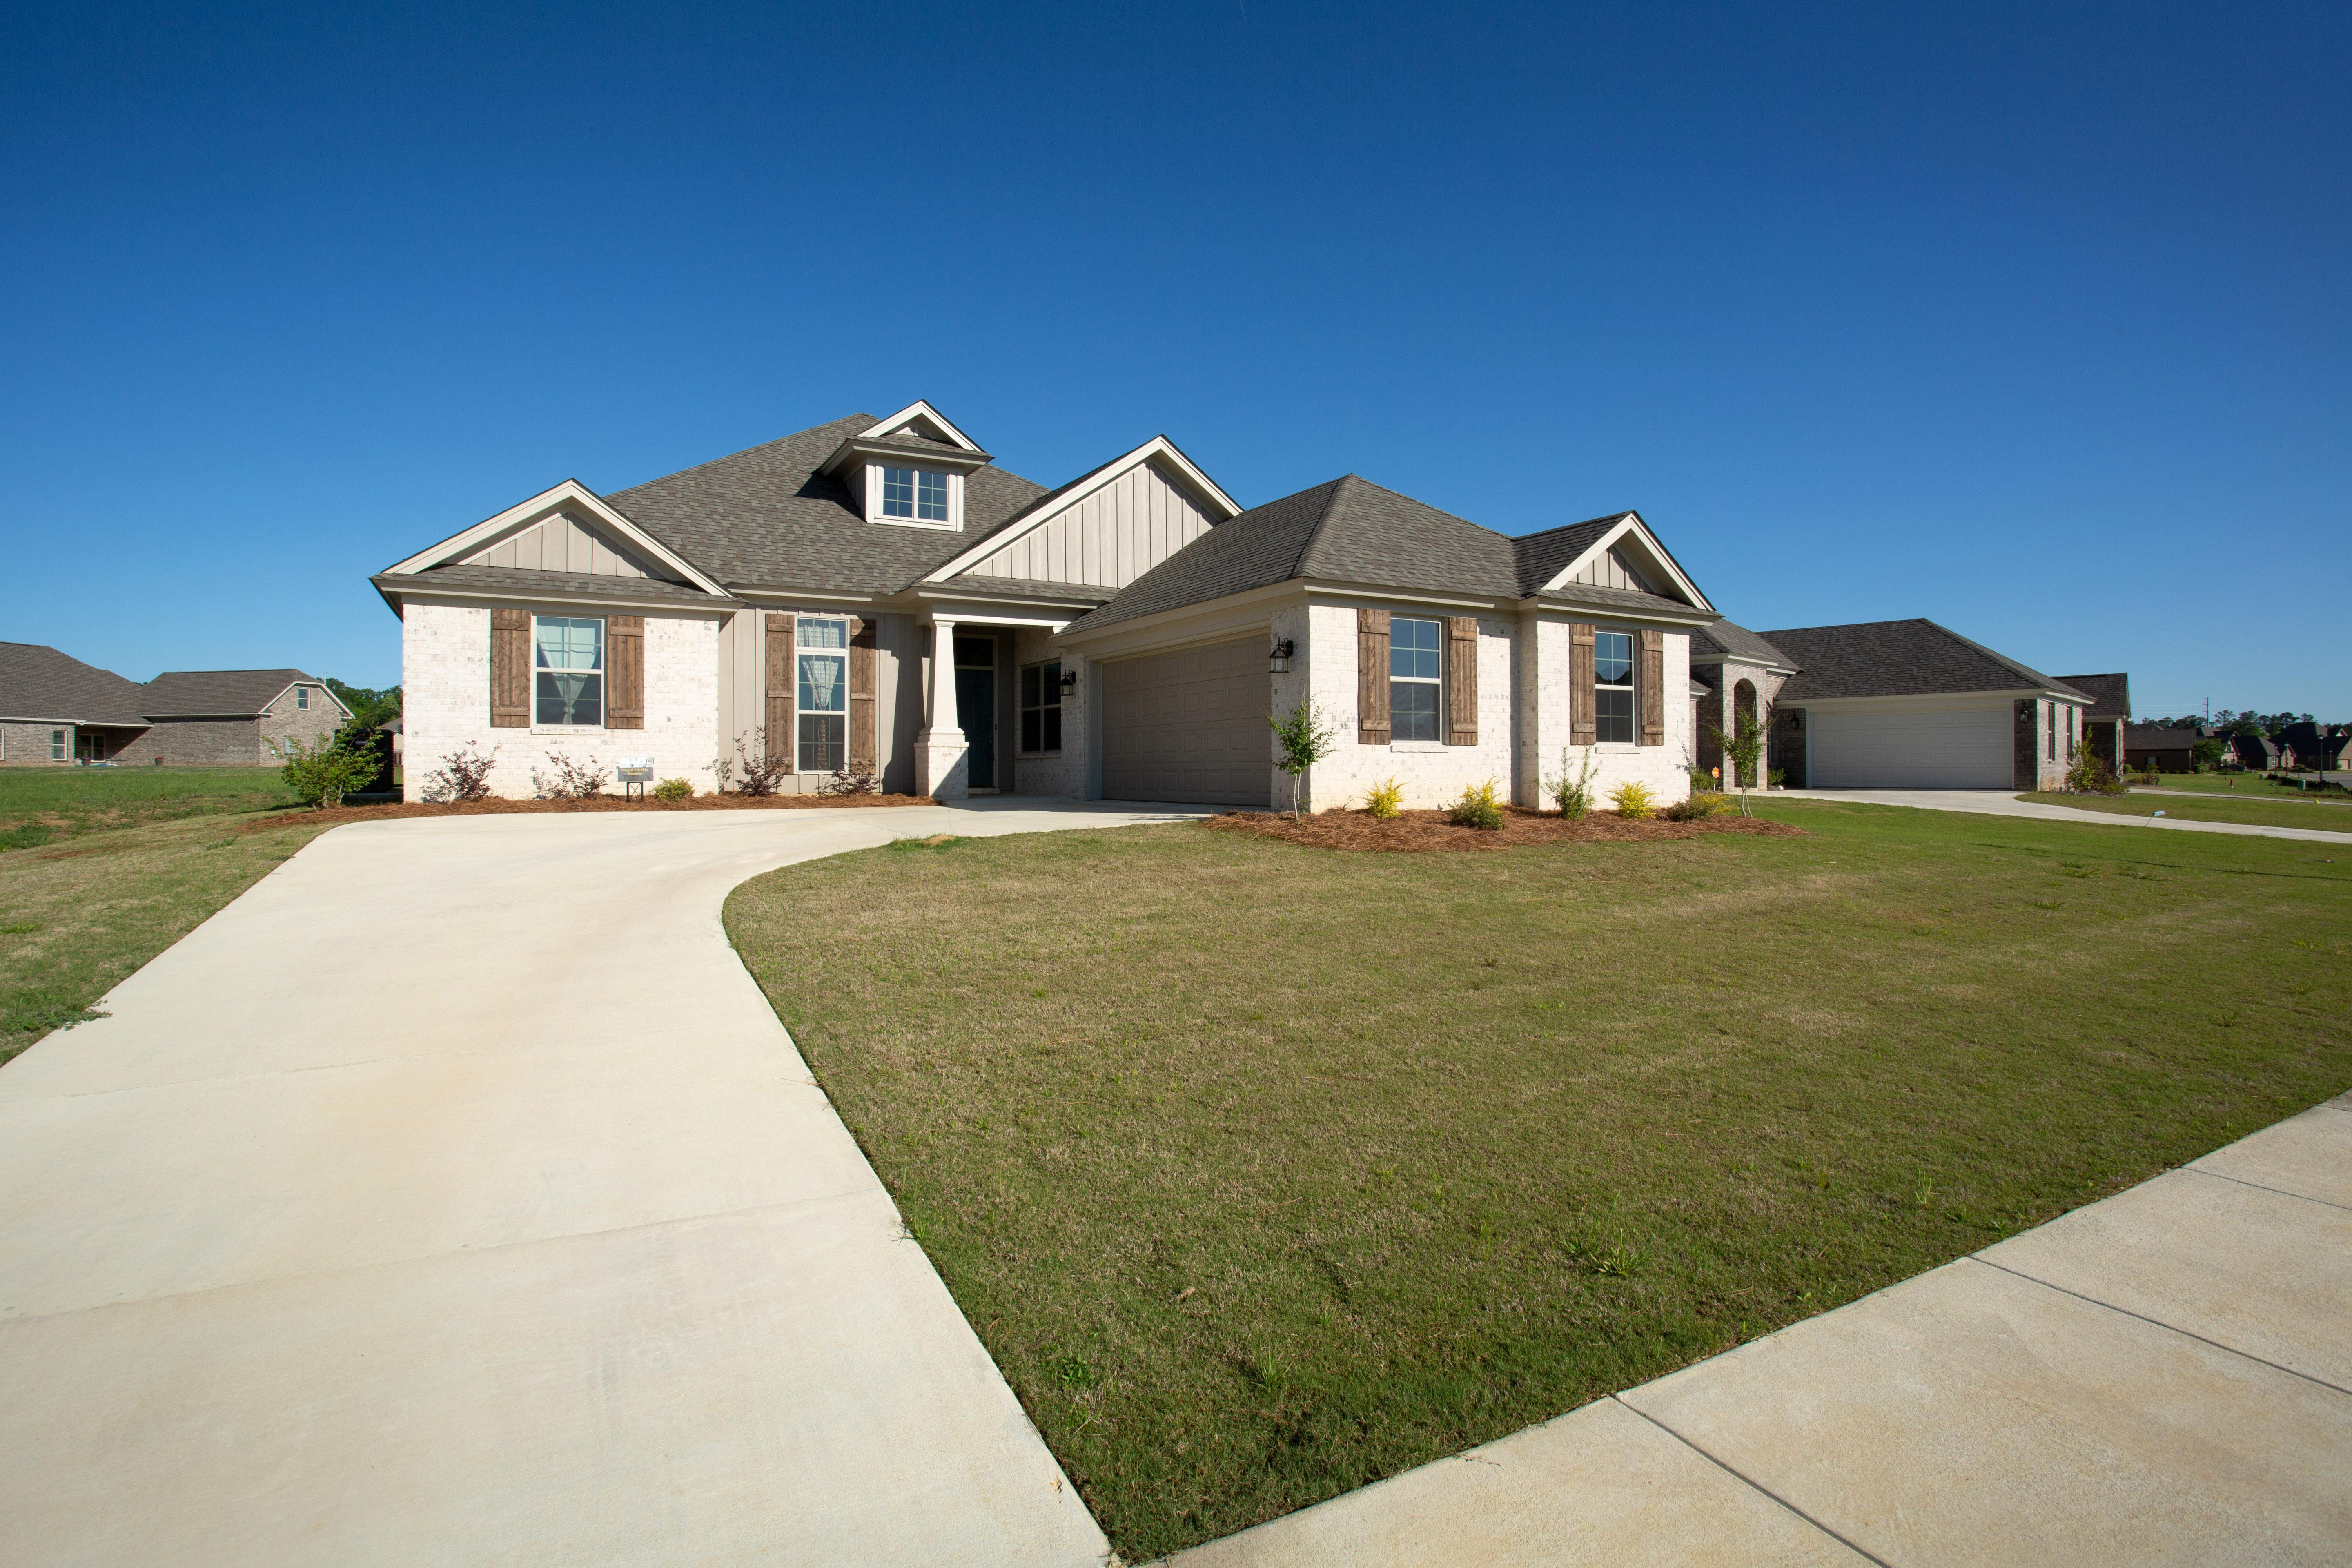 'New Park – A New Home Community' by New Park Development in Montgomery